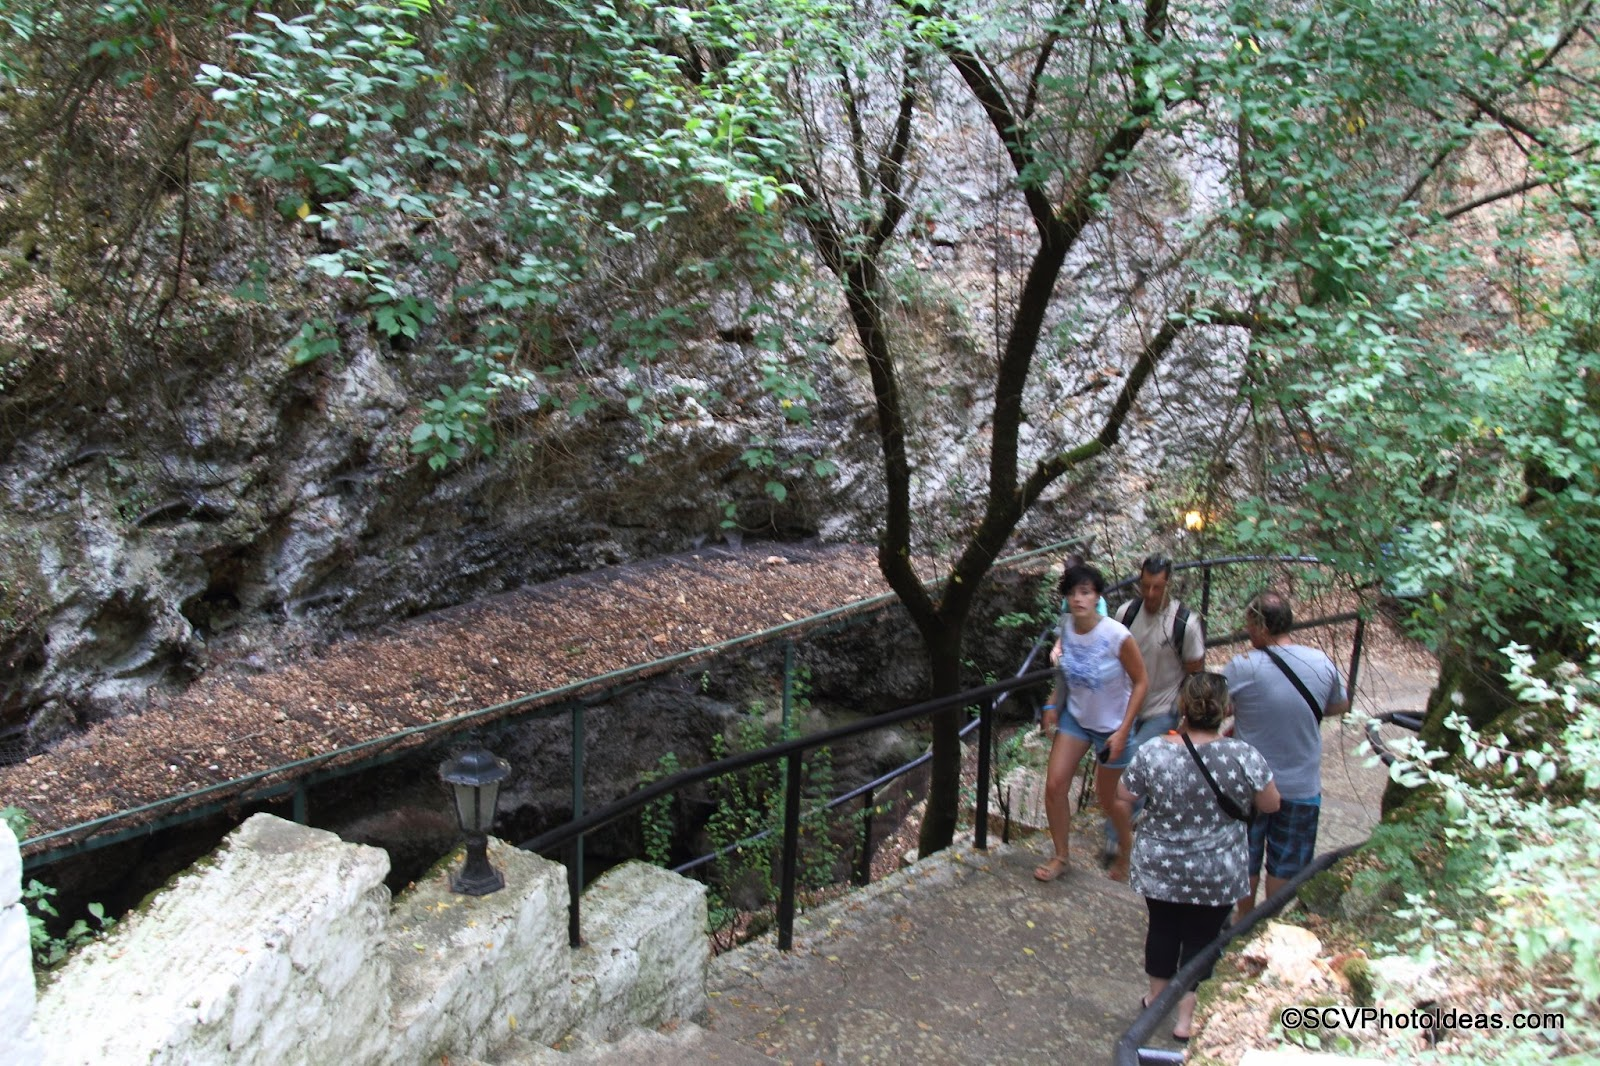 Drogarati Cave downward path to the entrance